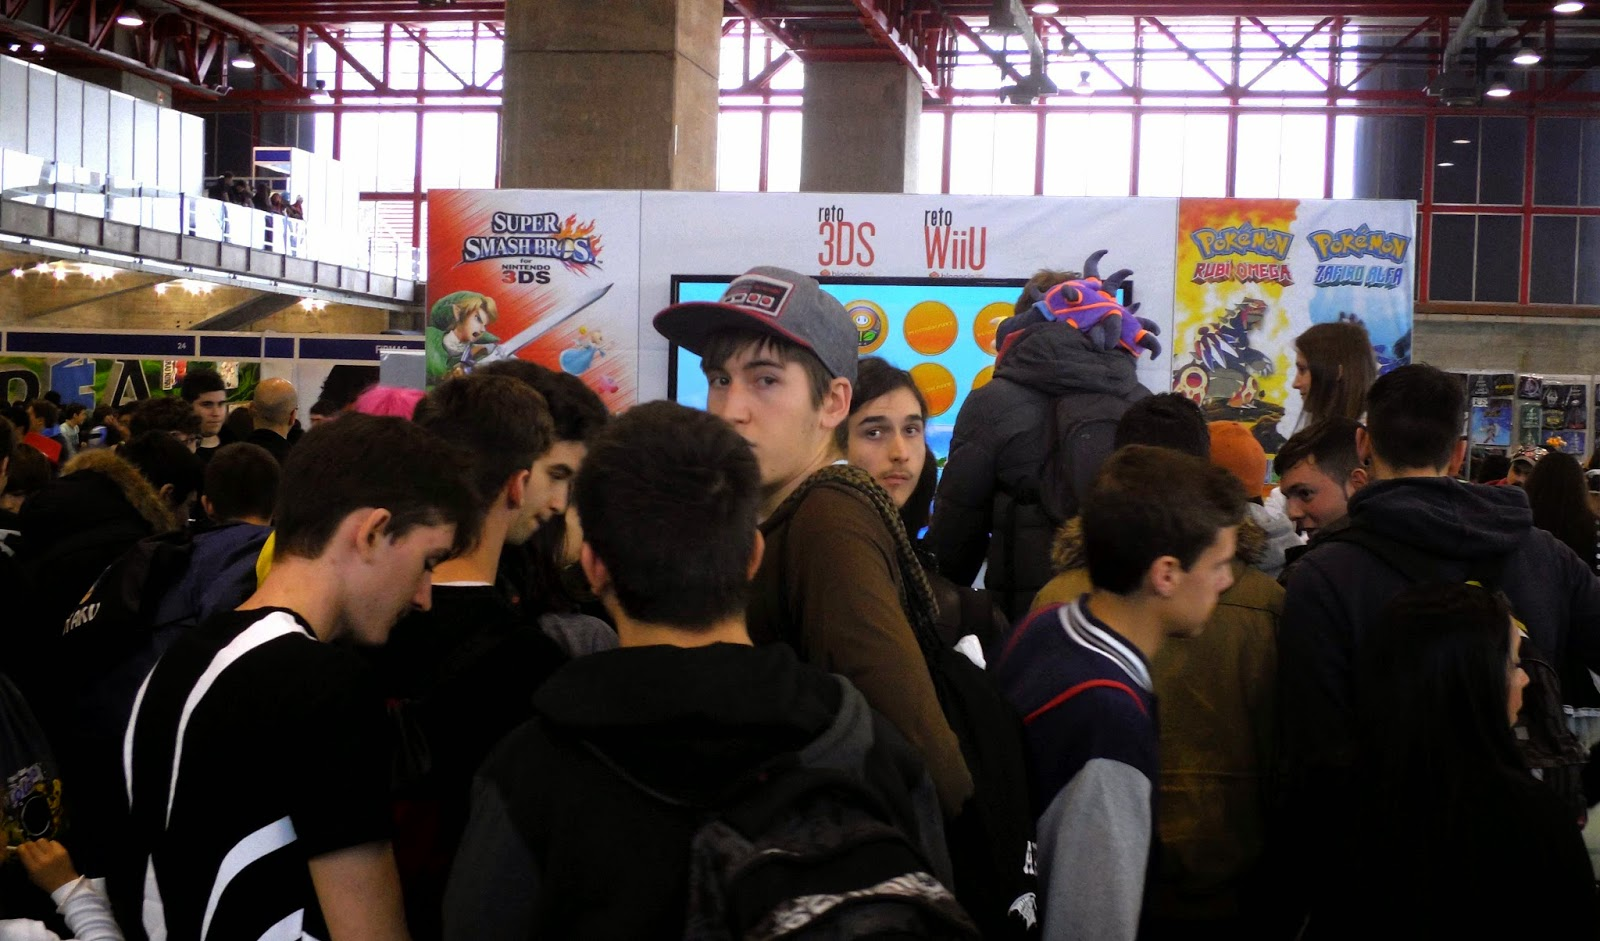 torneo super smash brosh reto 3ds japan weekend